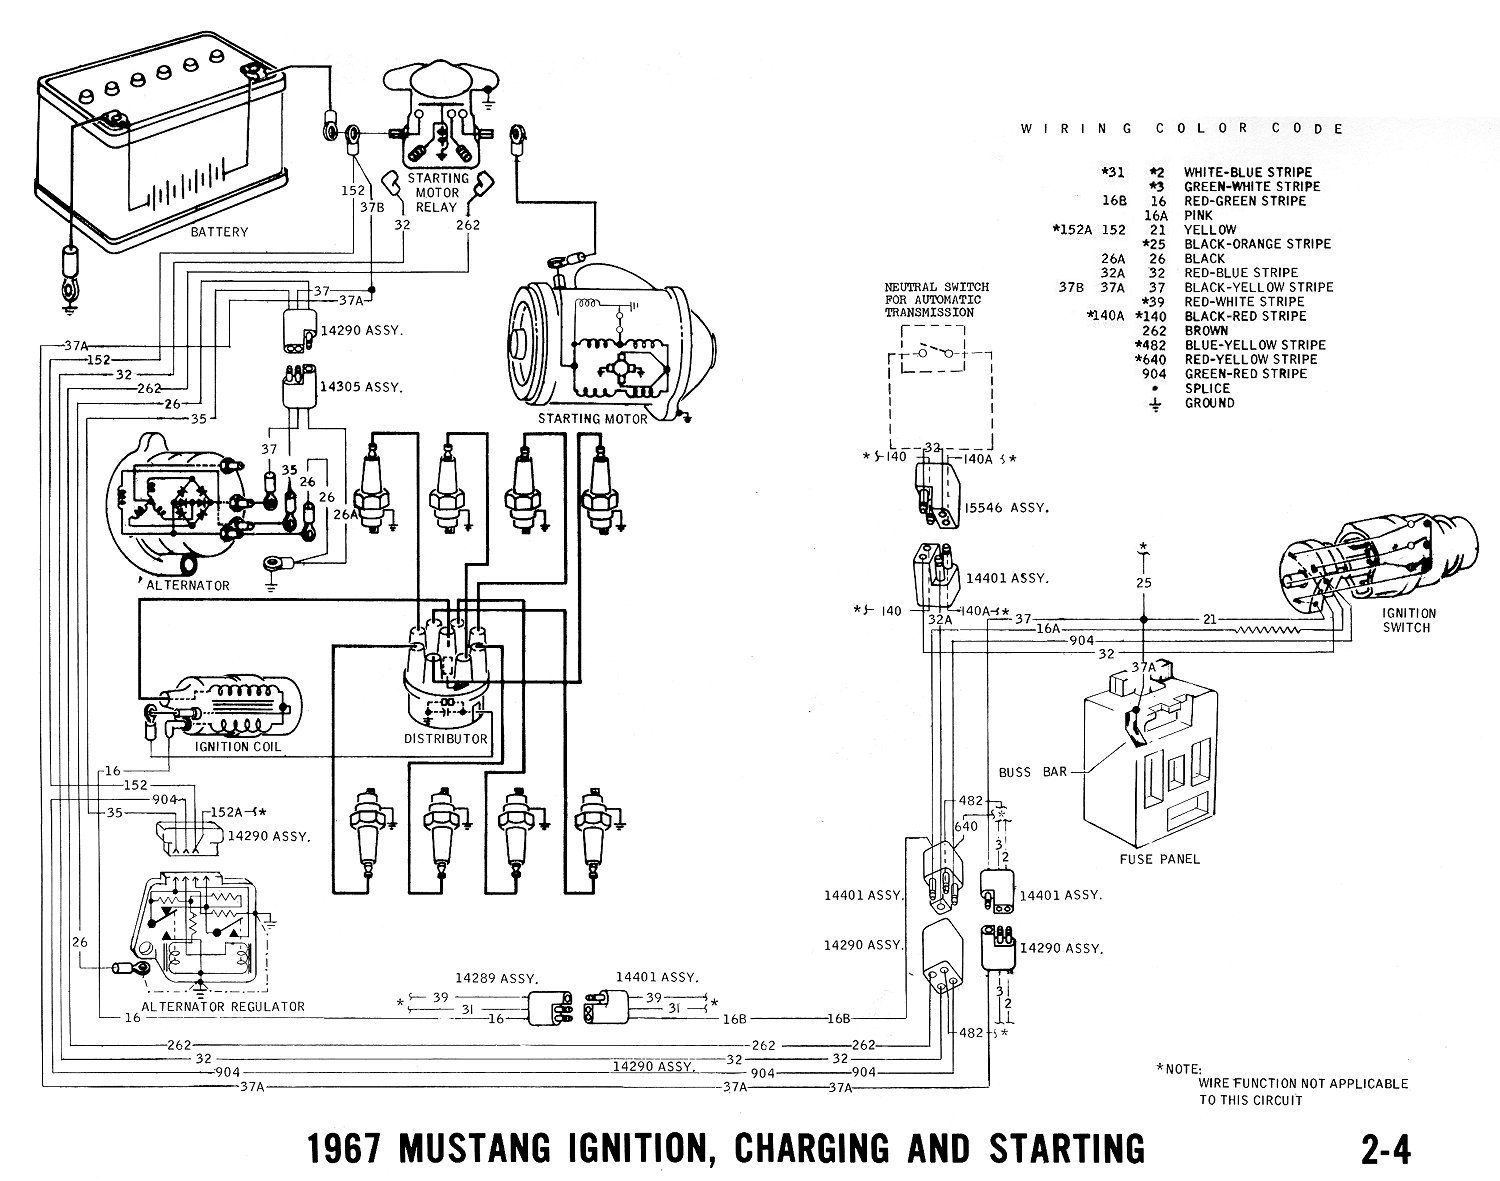 hight resolution of resistor wire bypass vintage mustang forums 1968 mustang wiring diagram ford mustang wiring diagram 64 12